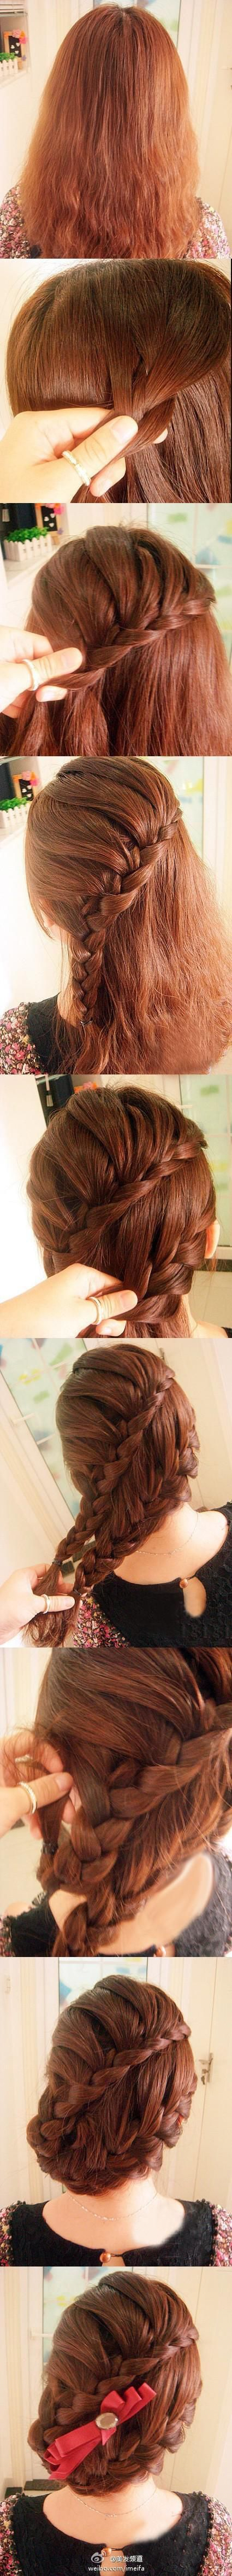 latest party hairstyles tutorial step by step 2018-2019 trends & looks